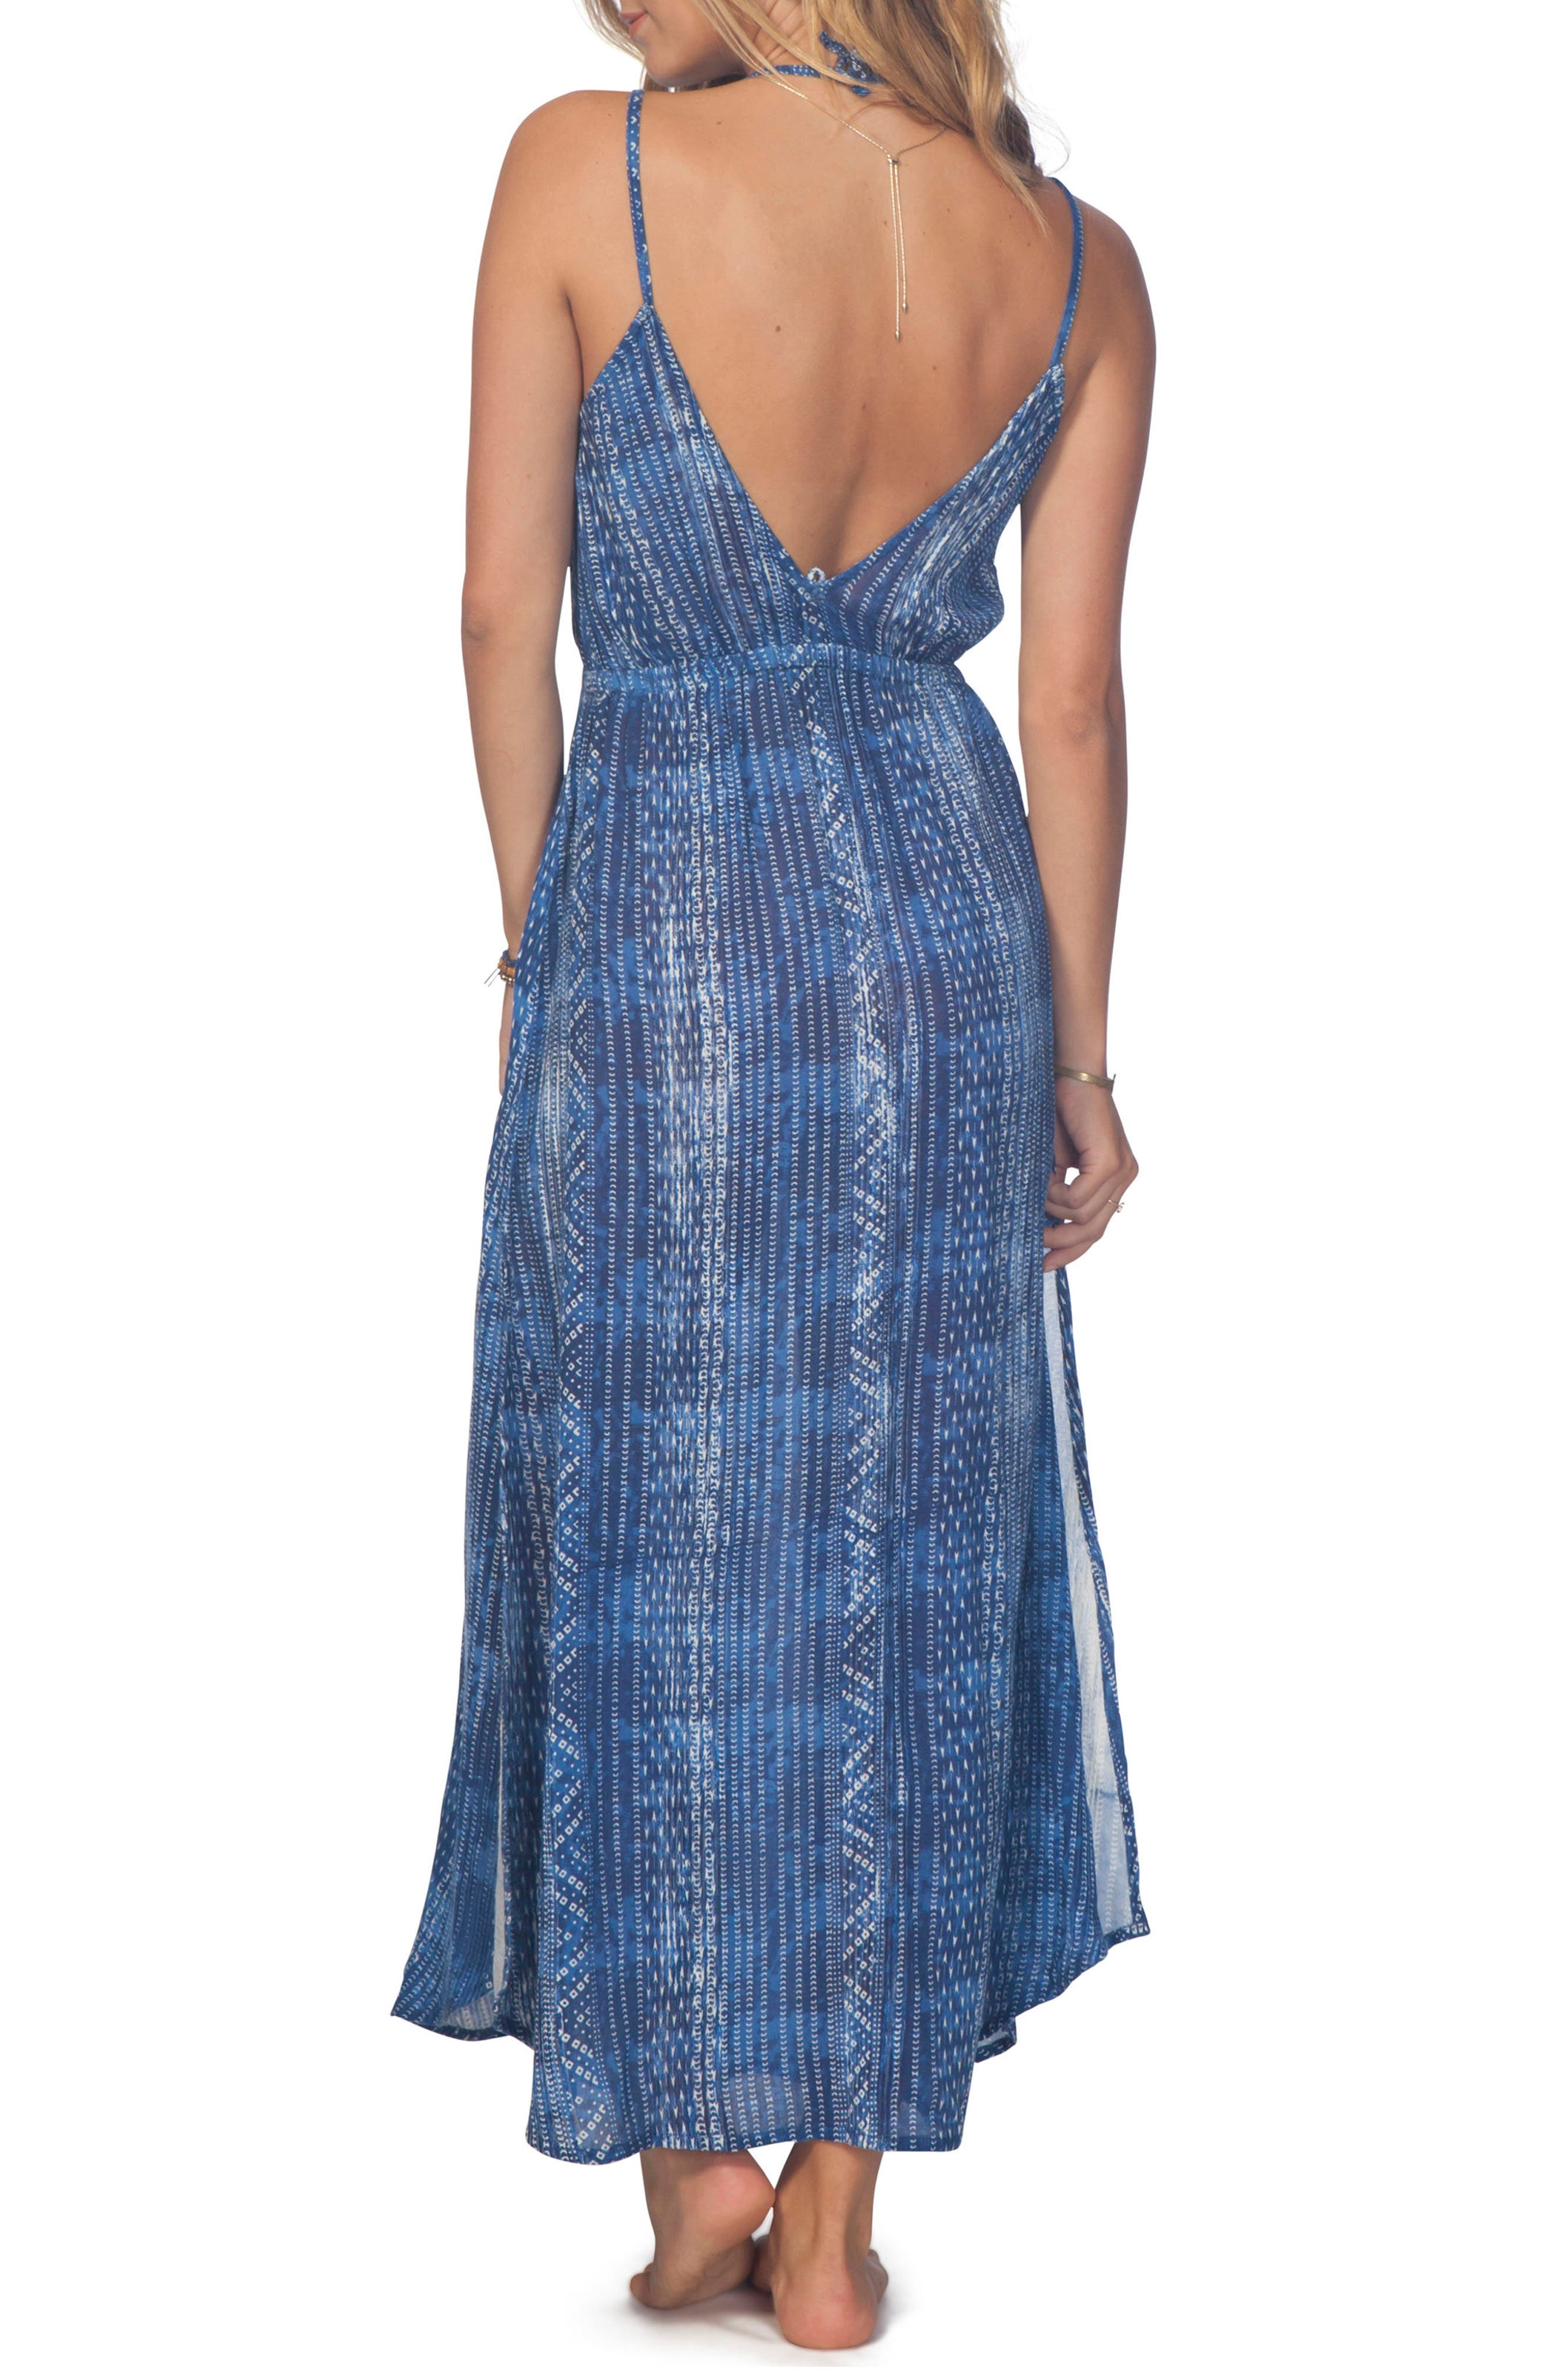 Blue Tides Maxi Dress,                             Alternate thumbnail 2, color,                             Blue